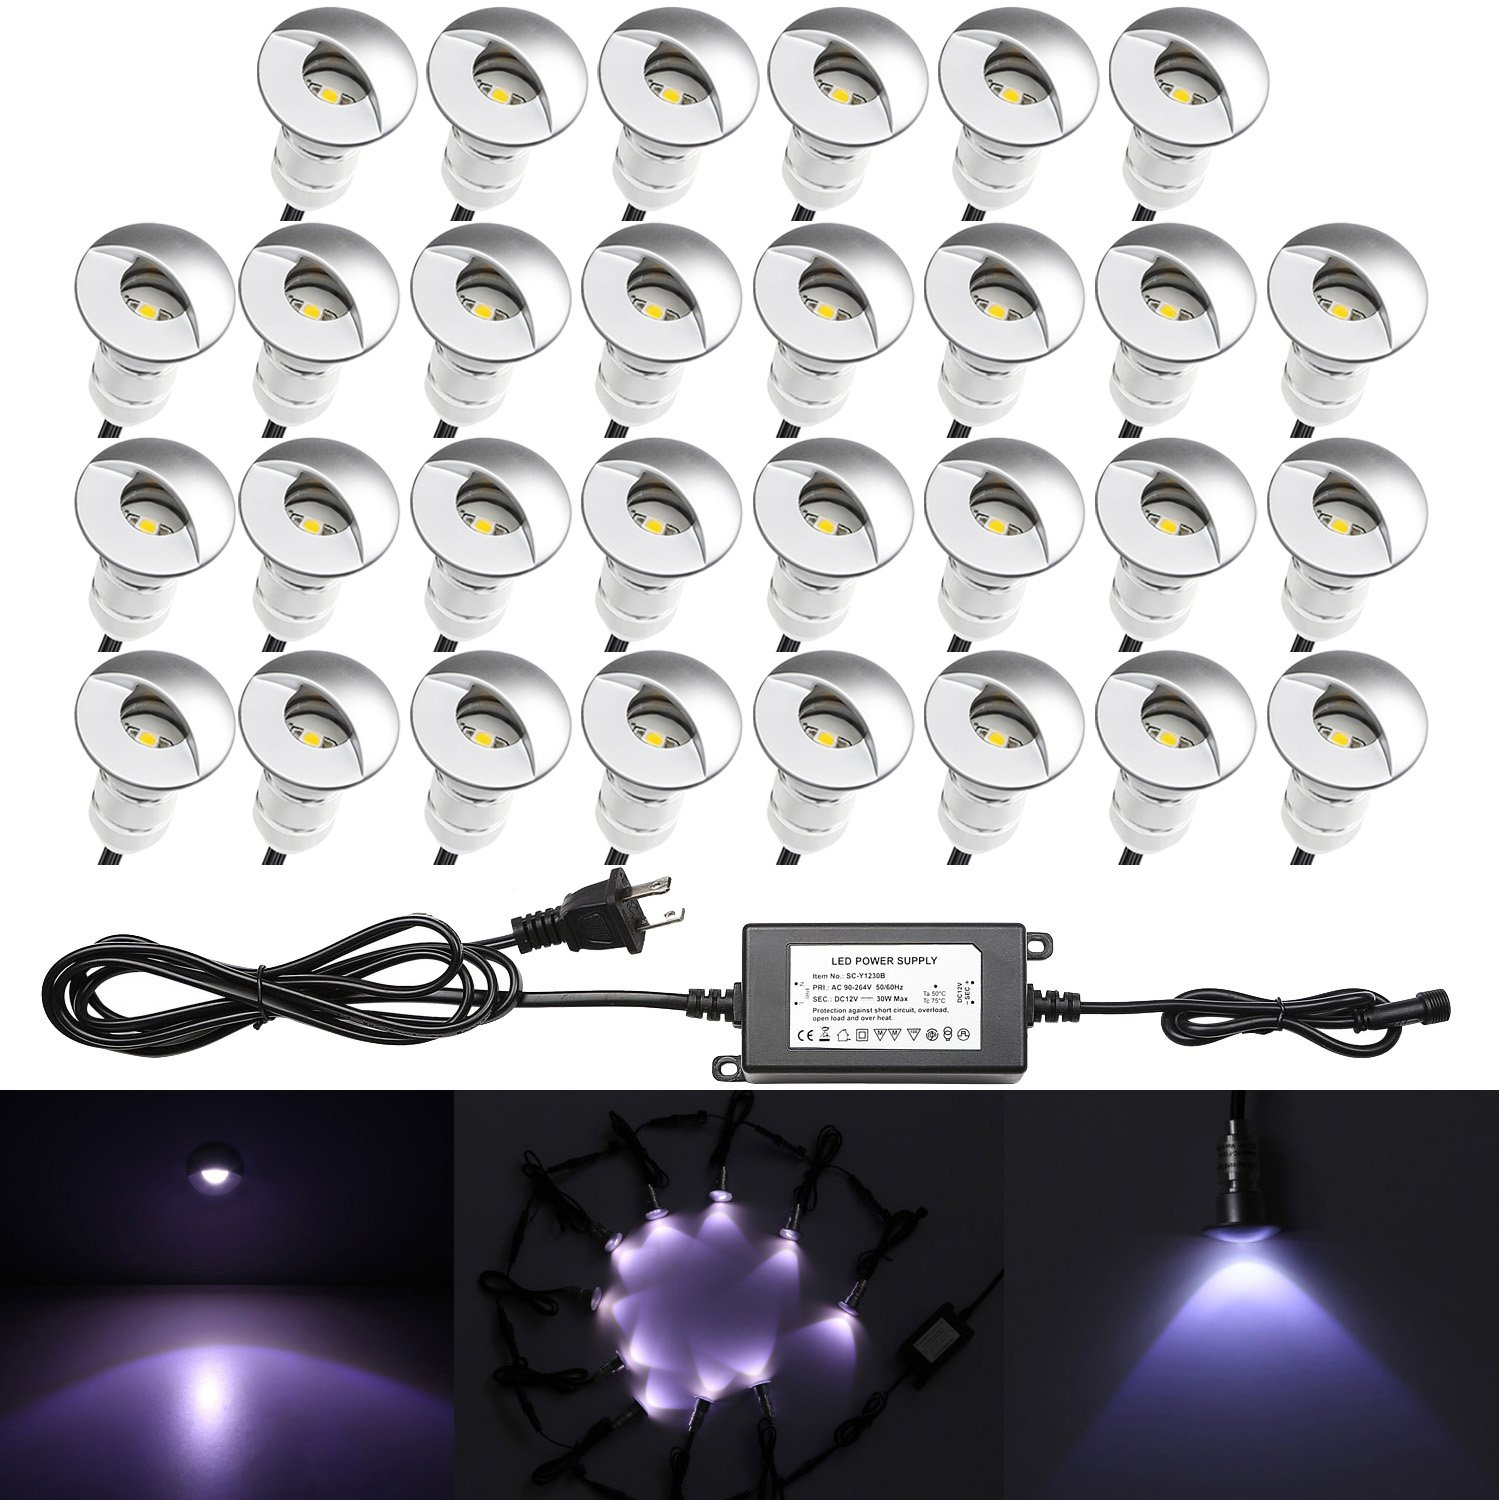 30pcs QACA LED Deck Light Kits 1-1/25'' Half Moon Aluminum Outdoor Wood Deck Lighting Yard Garden Patio Stair LED Light Decoration Lamps, Cold White